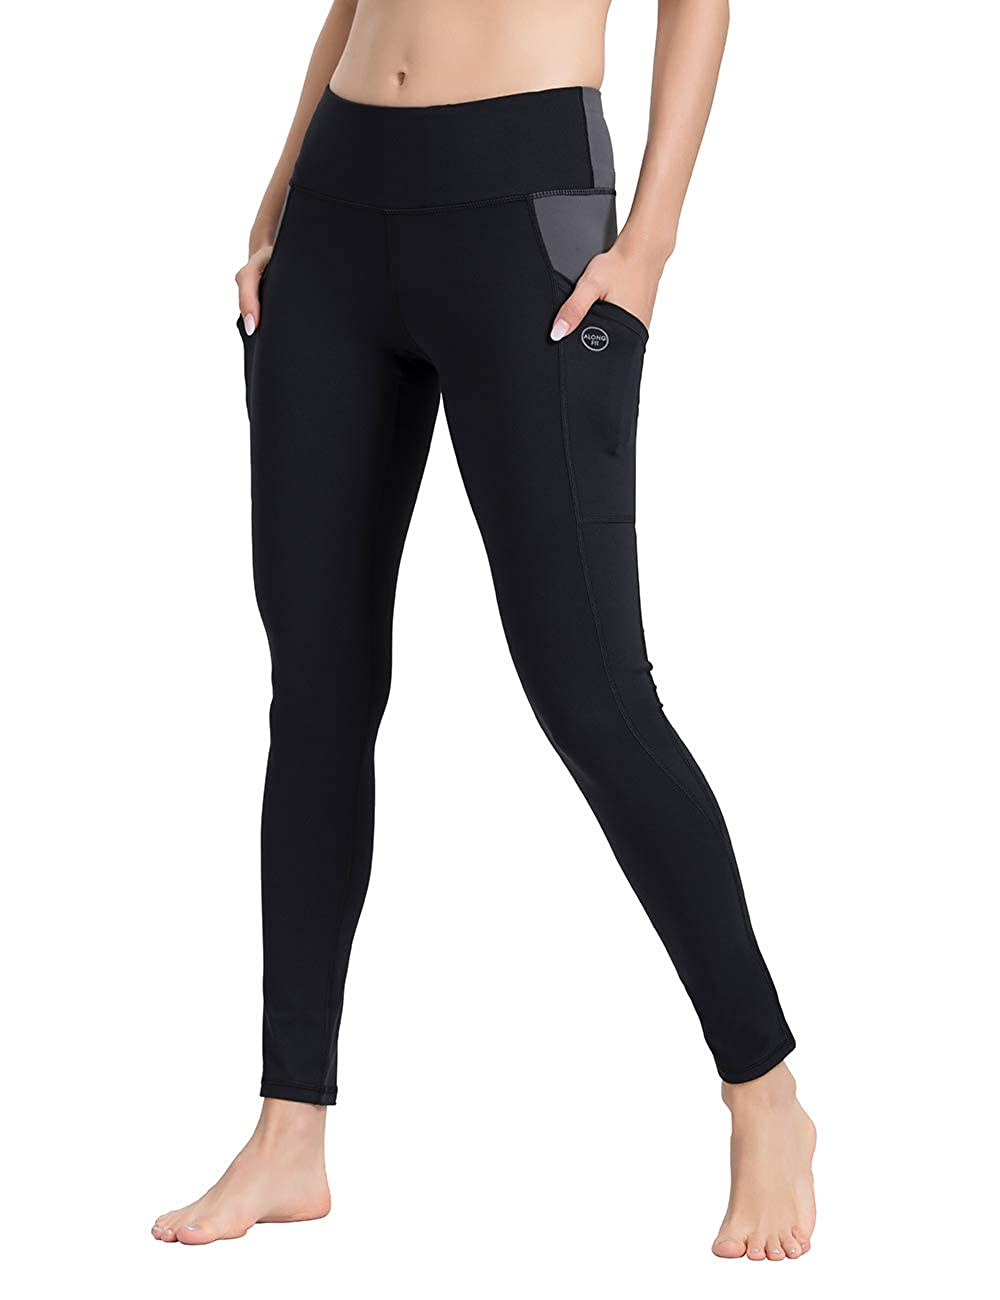 145f022ee27f2 Amazon.com: ALONG FIT Yoga Pants for Women with Phone Pockets, Compression Workout  Leggings Tummy Control Yoga Shorts Capris: Clothing